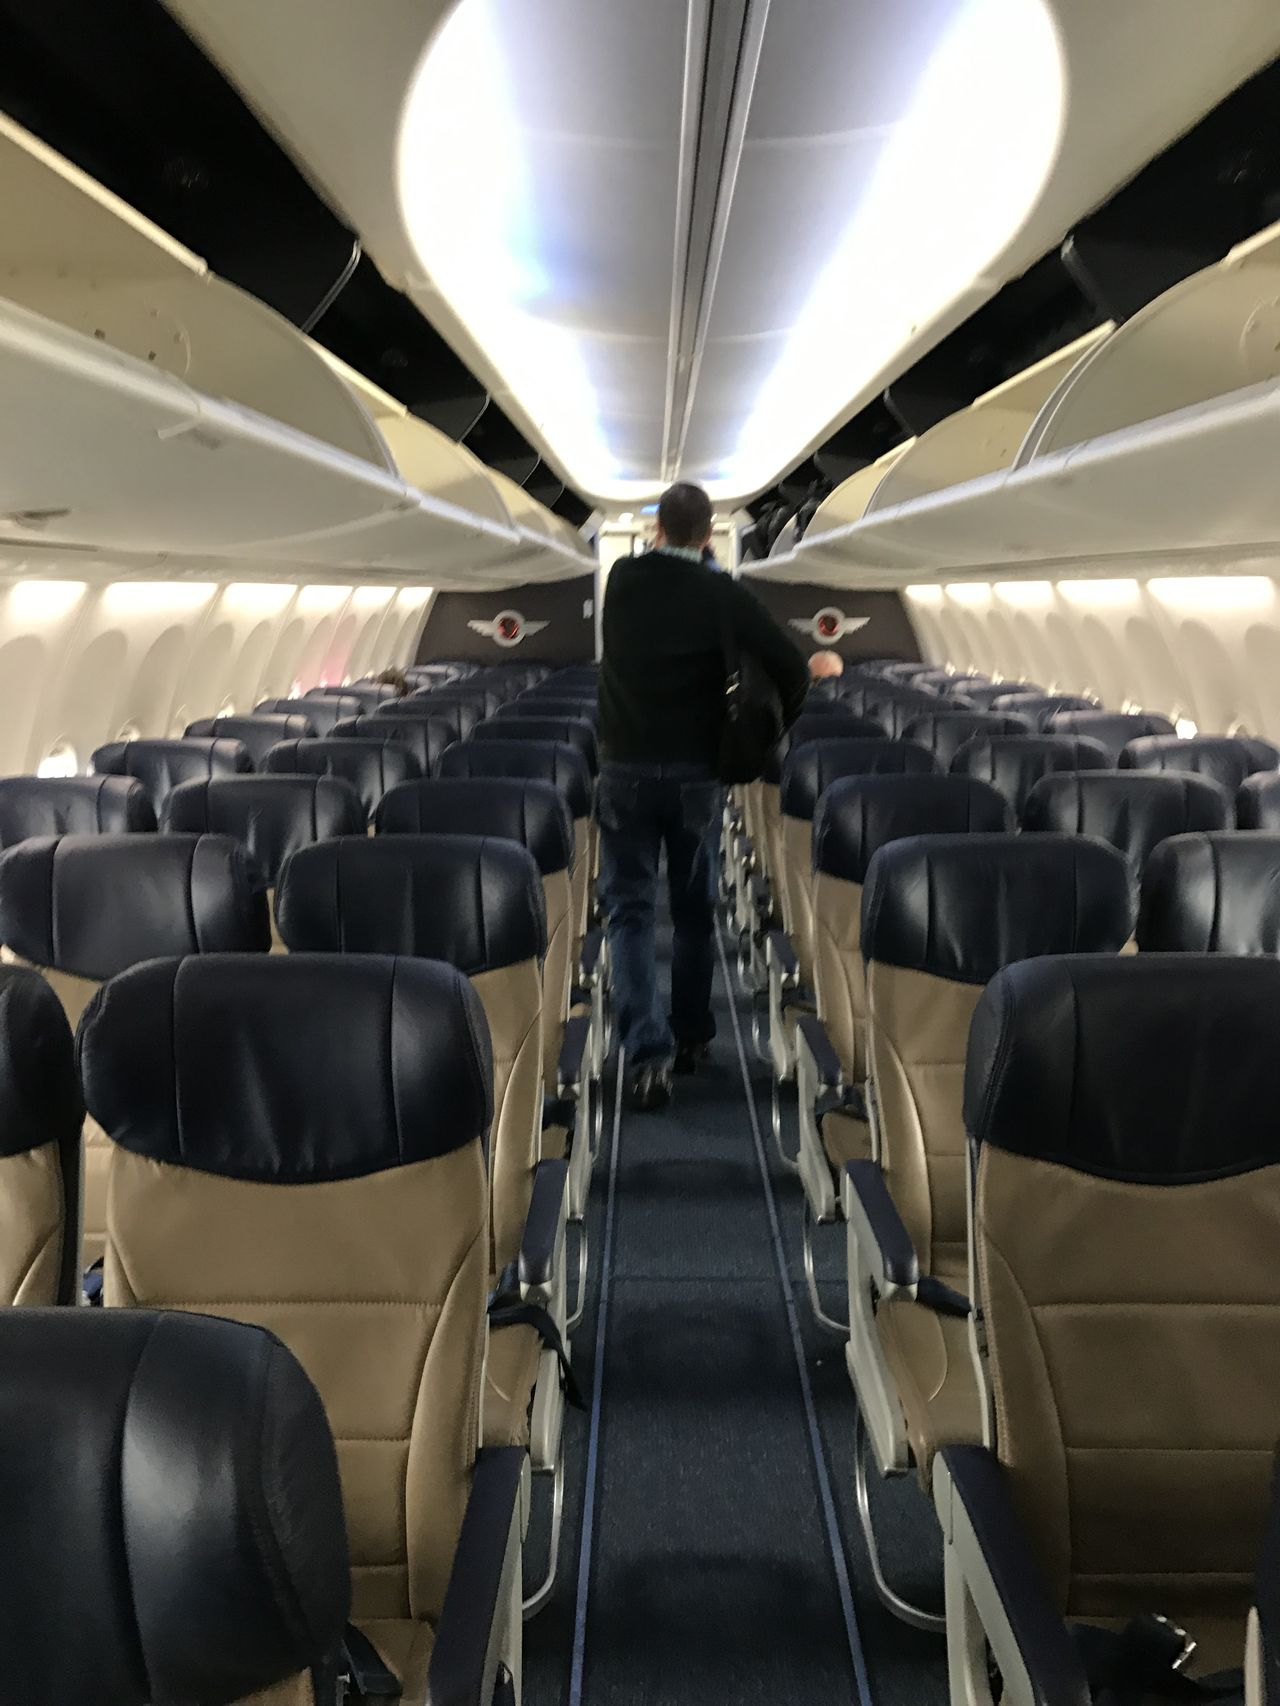 Southwest Airlines Fleet Boeing 737 800 Economy Cabin Interior Configuration with 3 3 Seats Layout